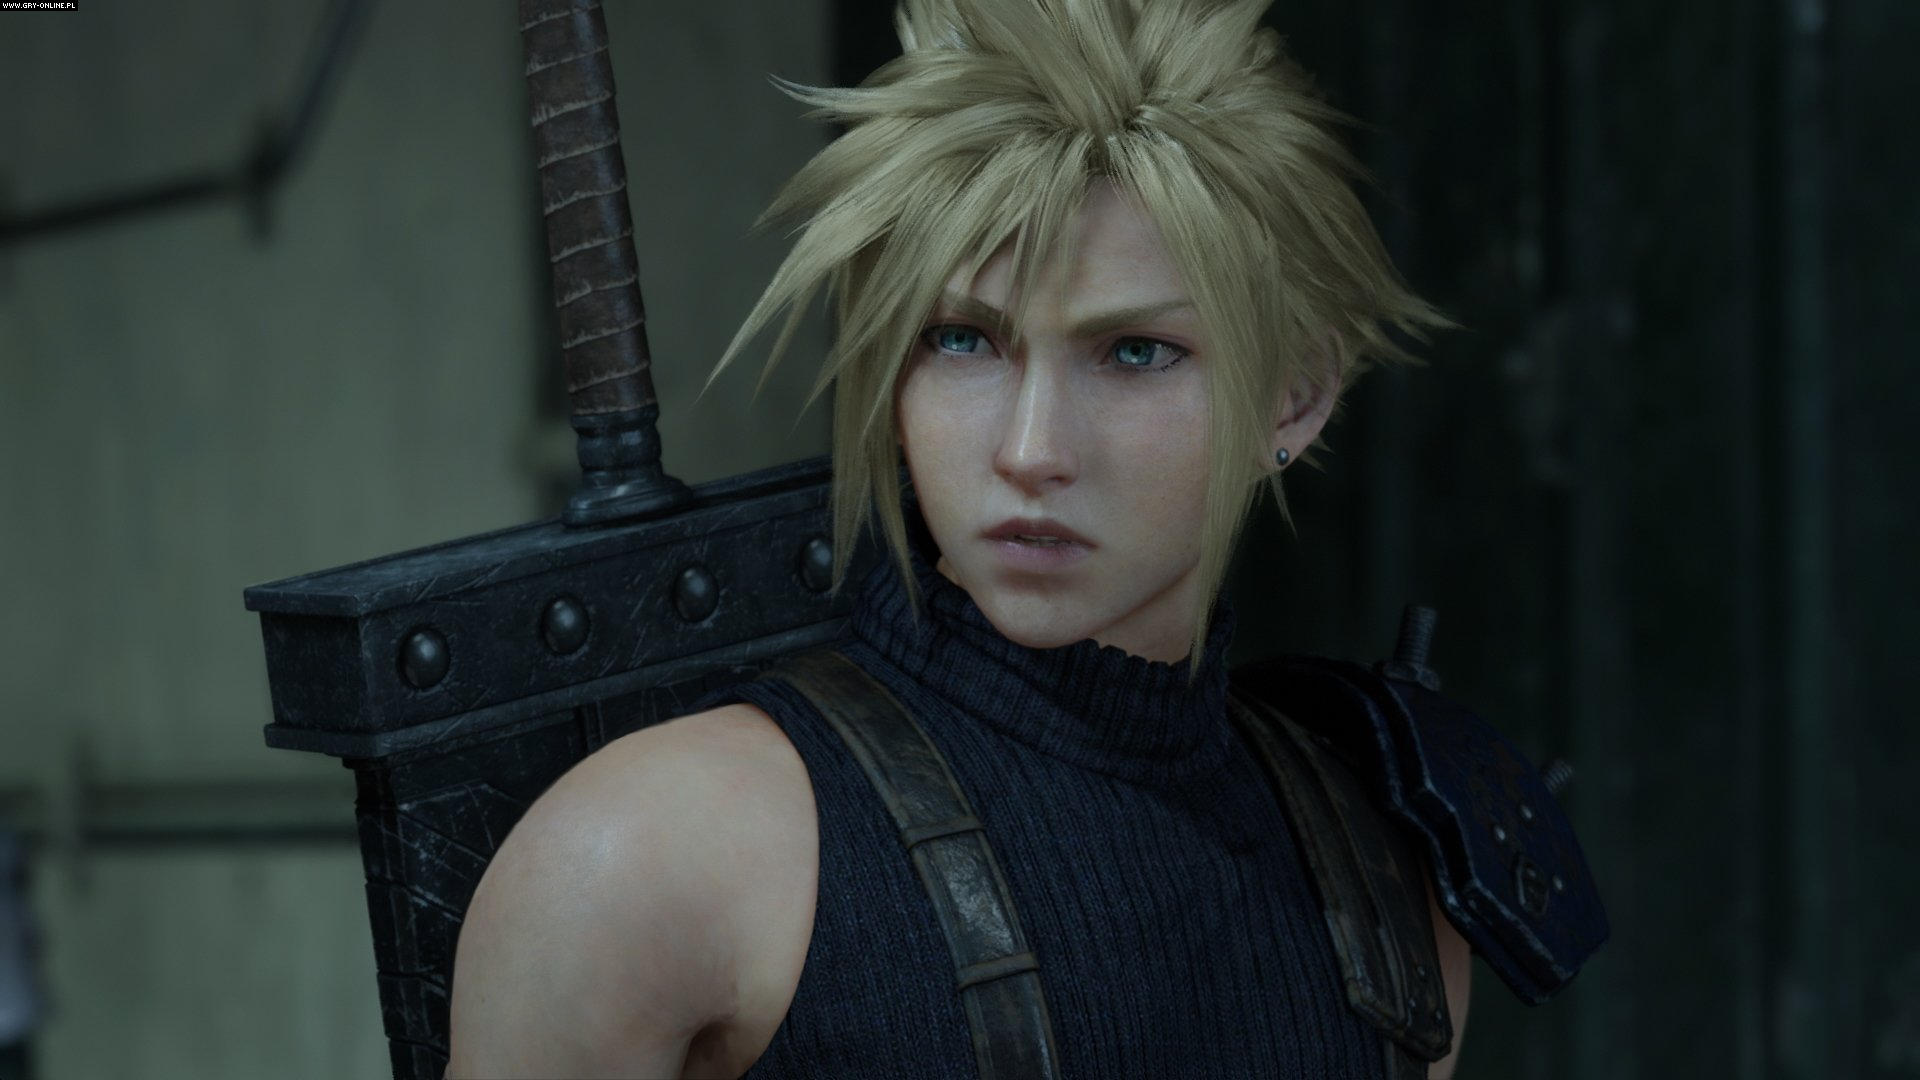 Final Fantasy VII Remake PS4 Games Image 86/102, Square-Enix / Eidos